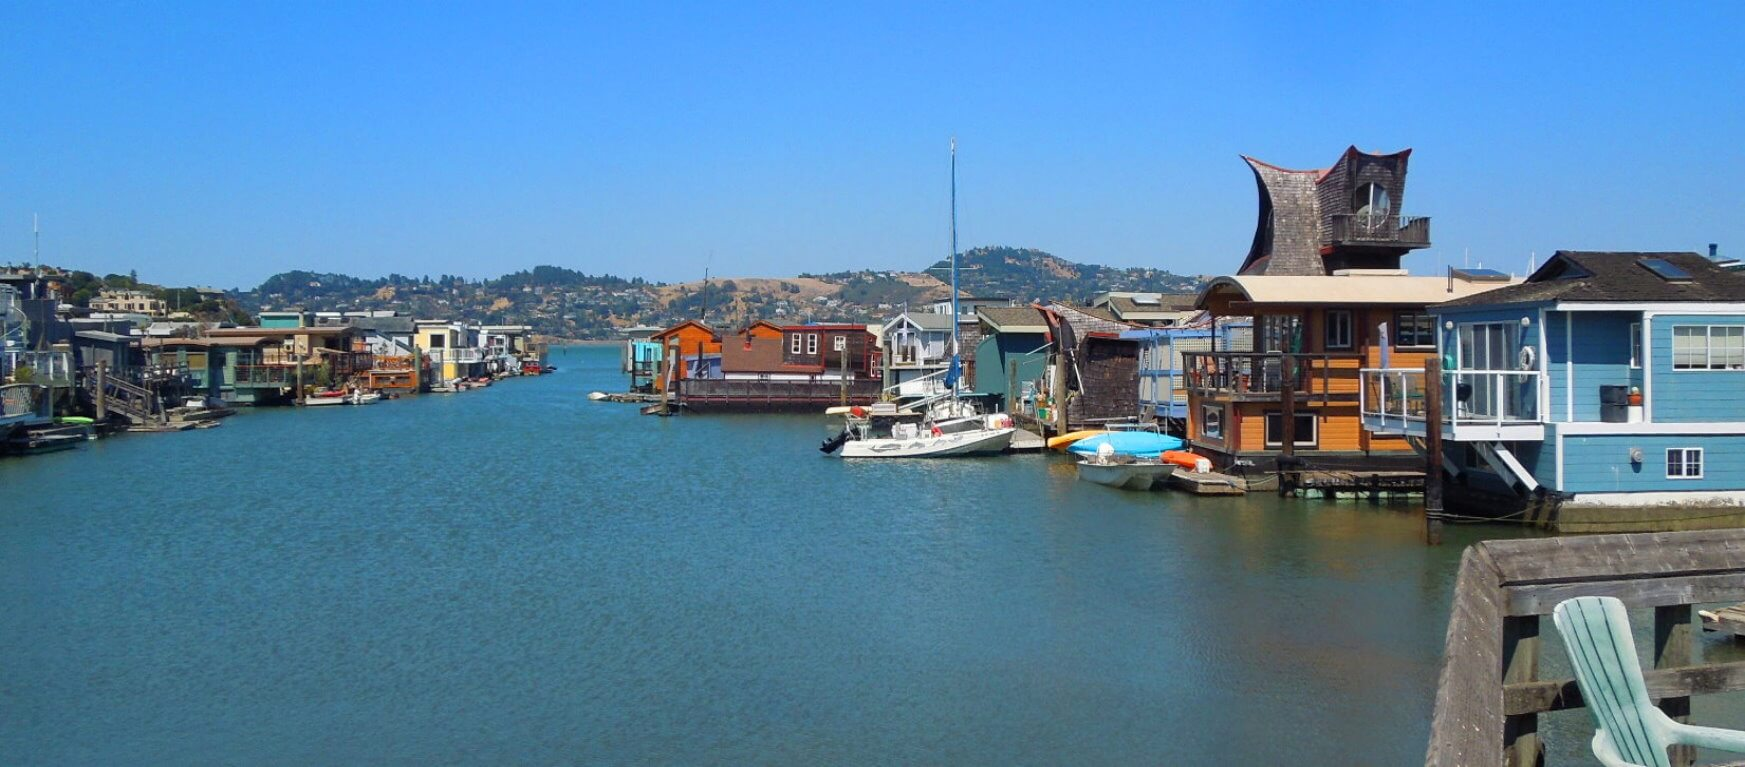 sausalito-house-boats-tour-muirwoods-day-trip-from-sanfrancisco